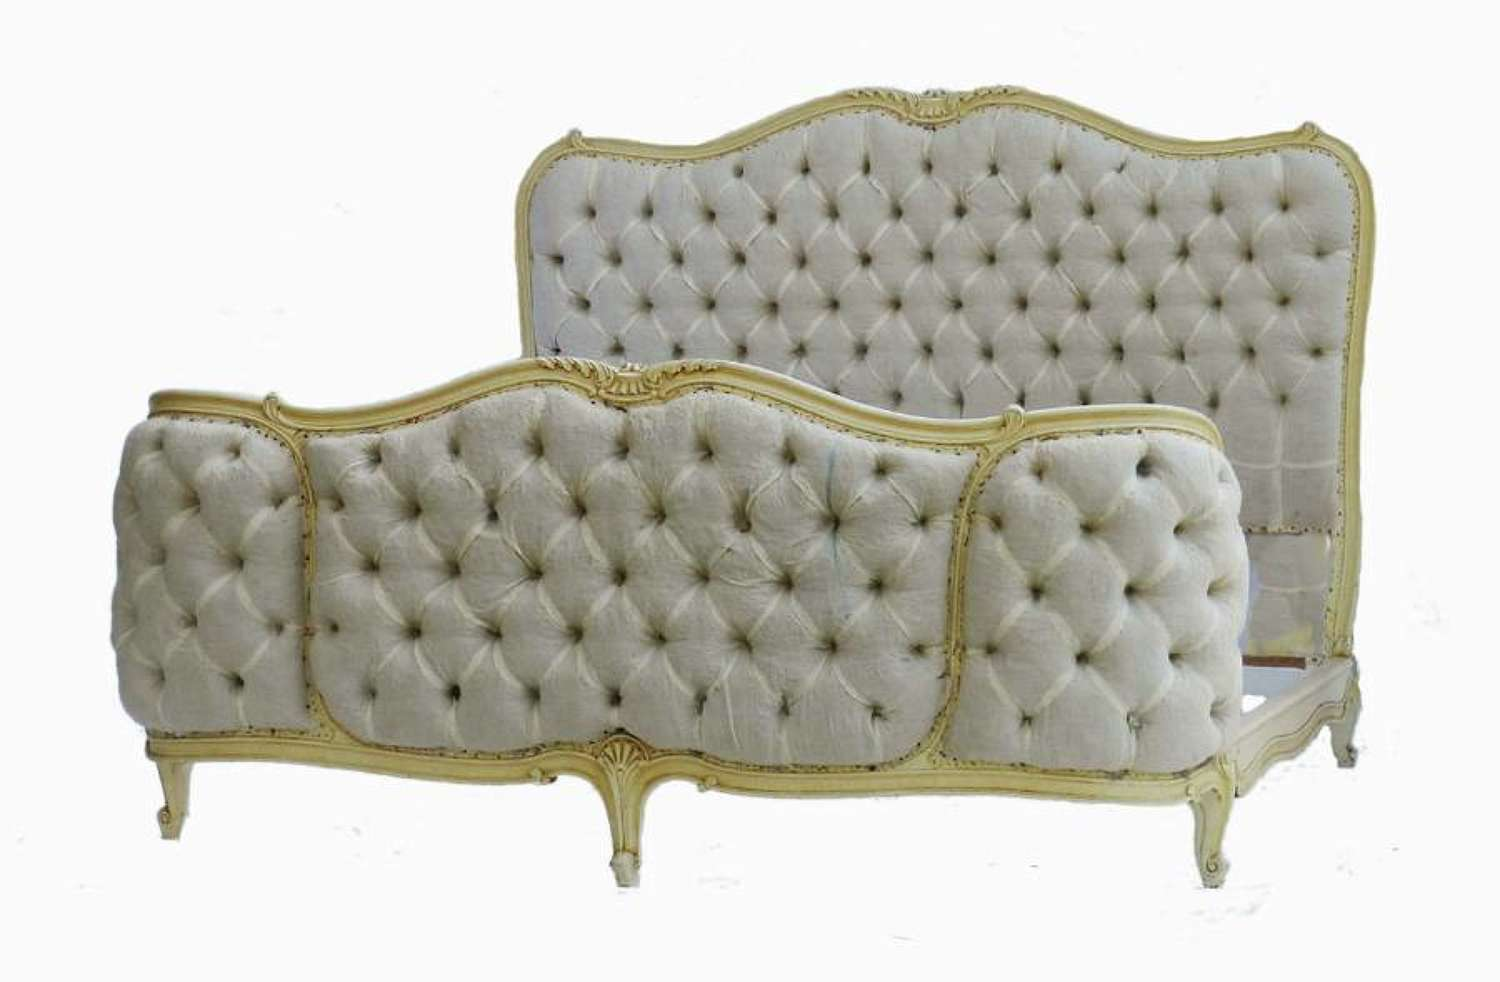 French Bed + Base UK King size US Queen Corbeille Button Back ready for top covers